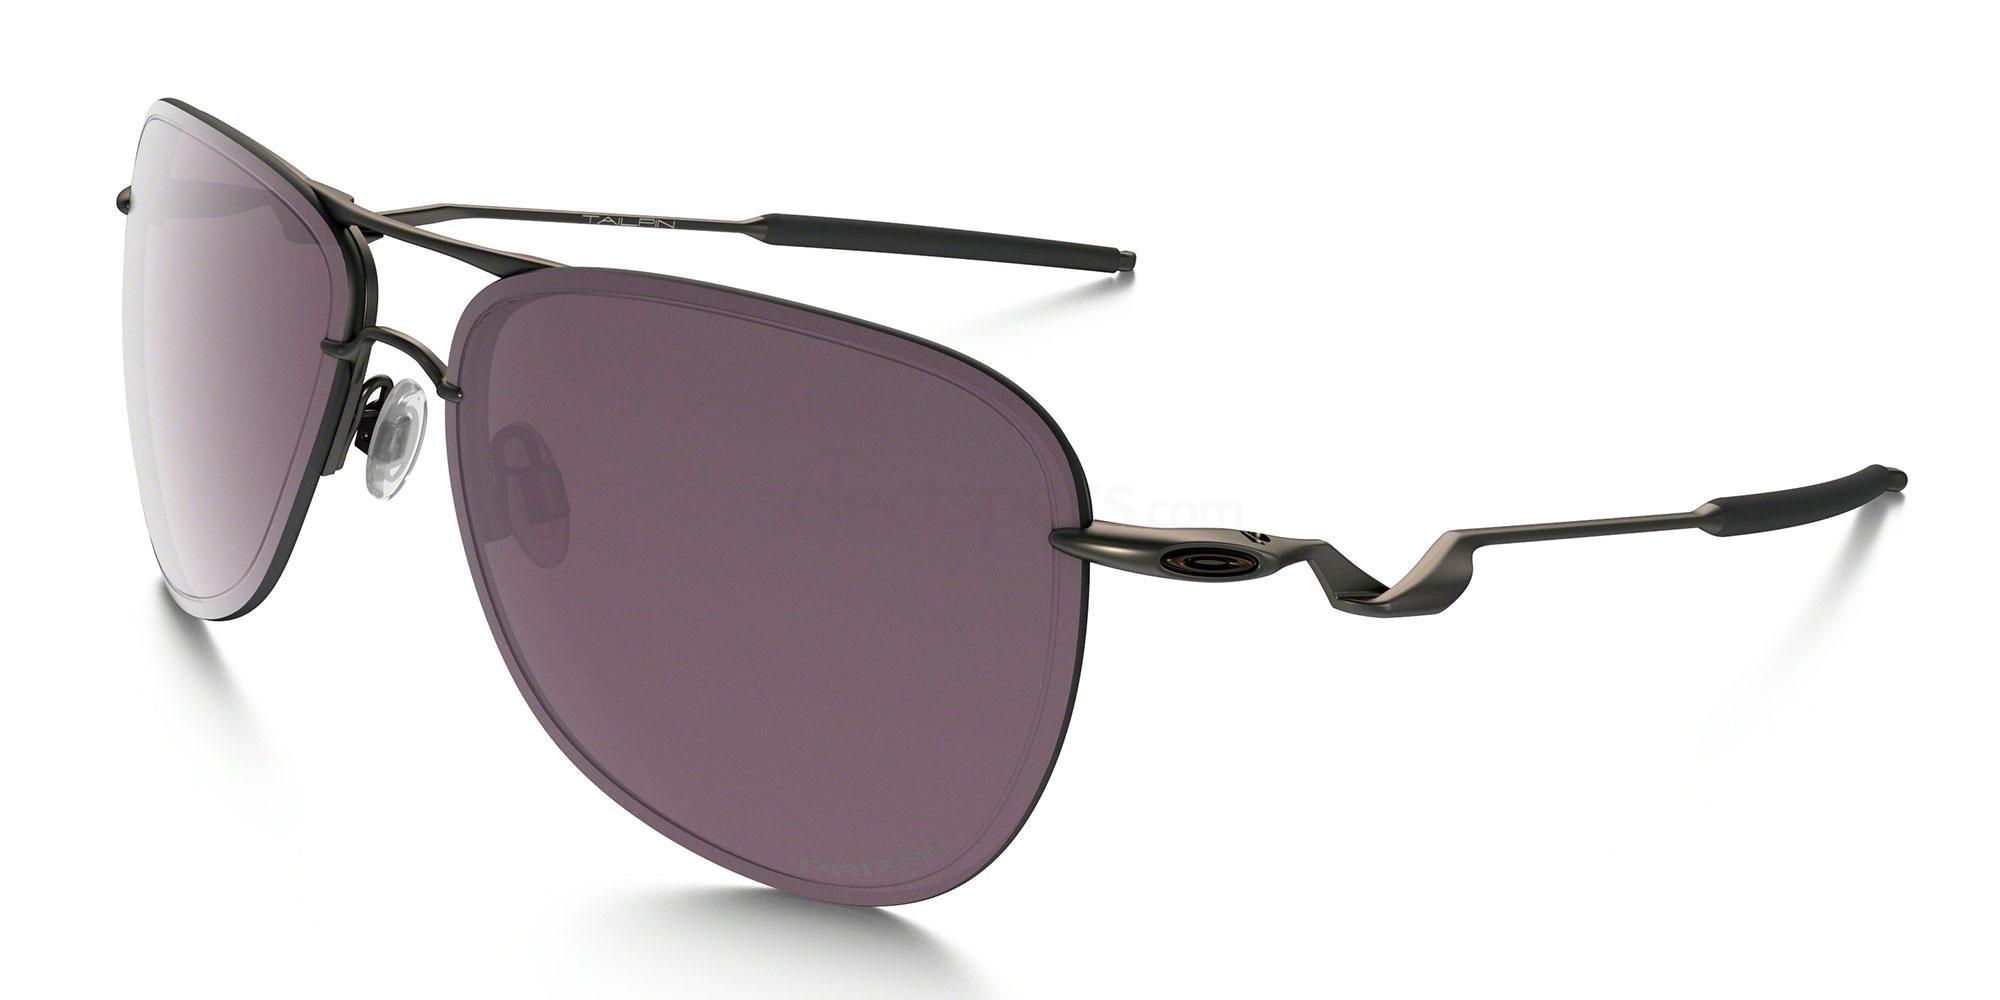 408604 OO4086 PRIZM DAILY POLARIZED TAILPIN CARBON Sunglasses, Oakley